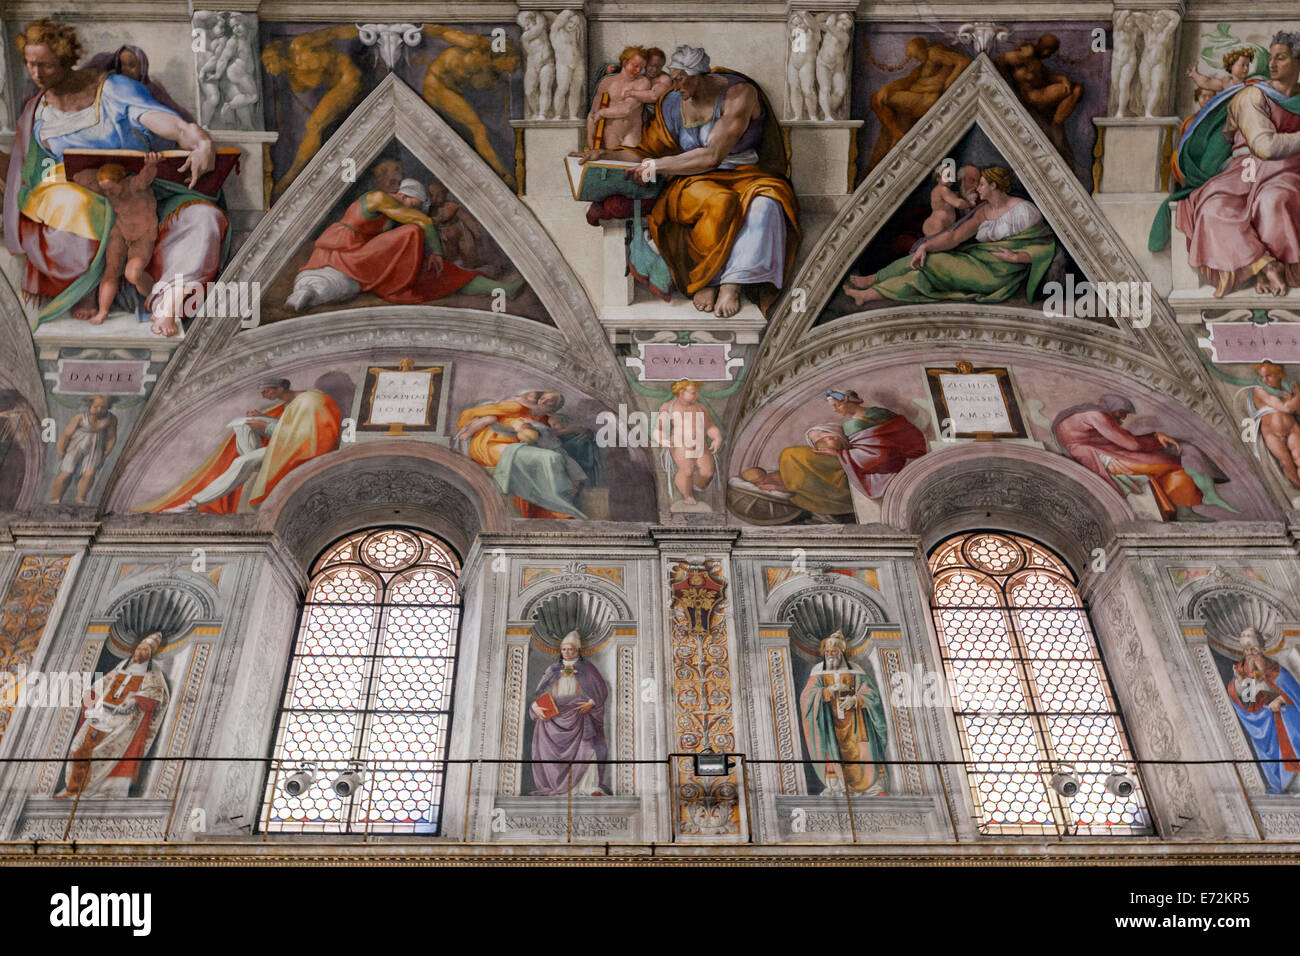 michelangelo fresco stockfotos michelangelo fresco bilder alamy. Black Bedroom Furniture Sets. Home Design Ideas